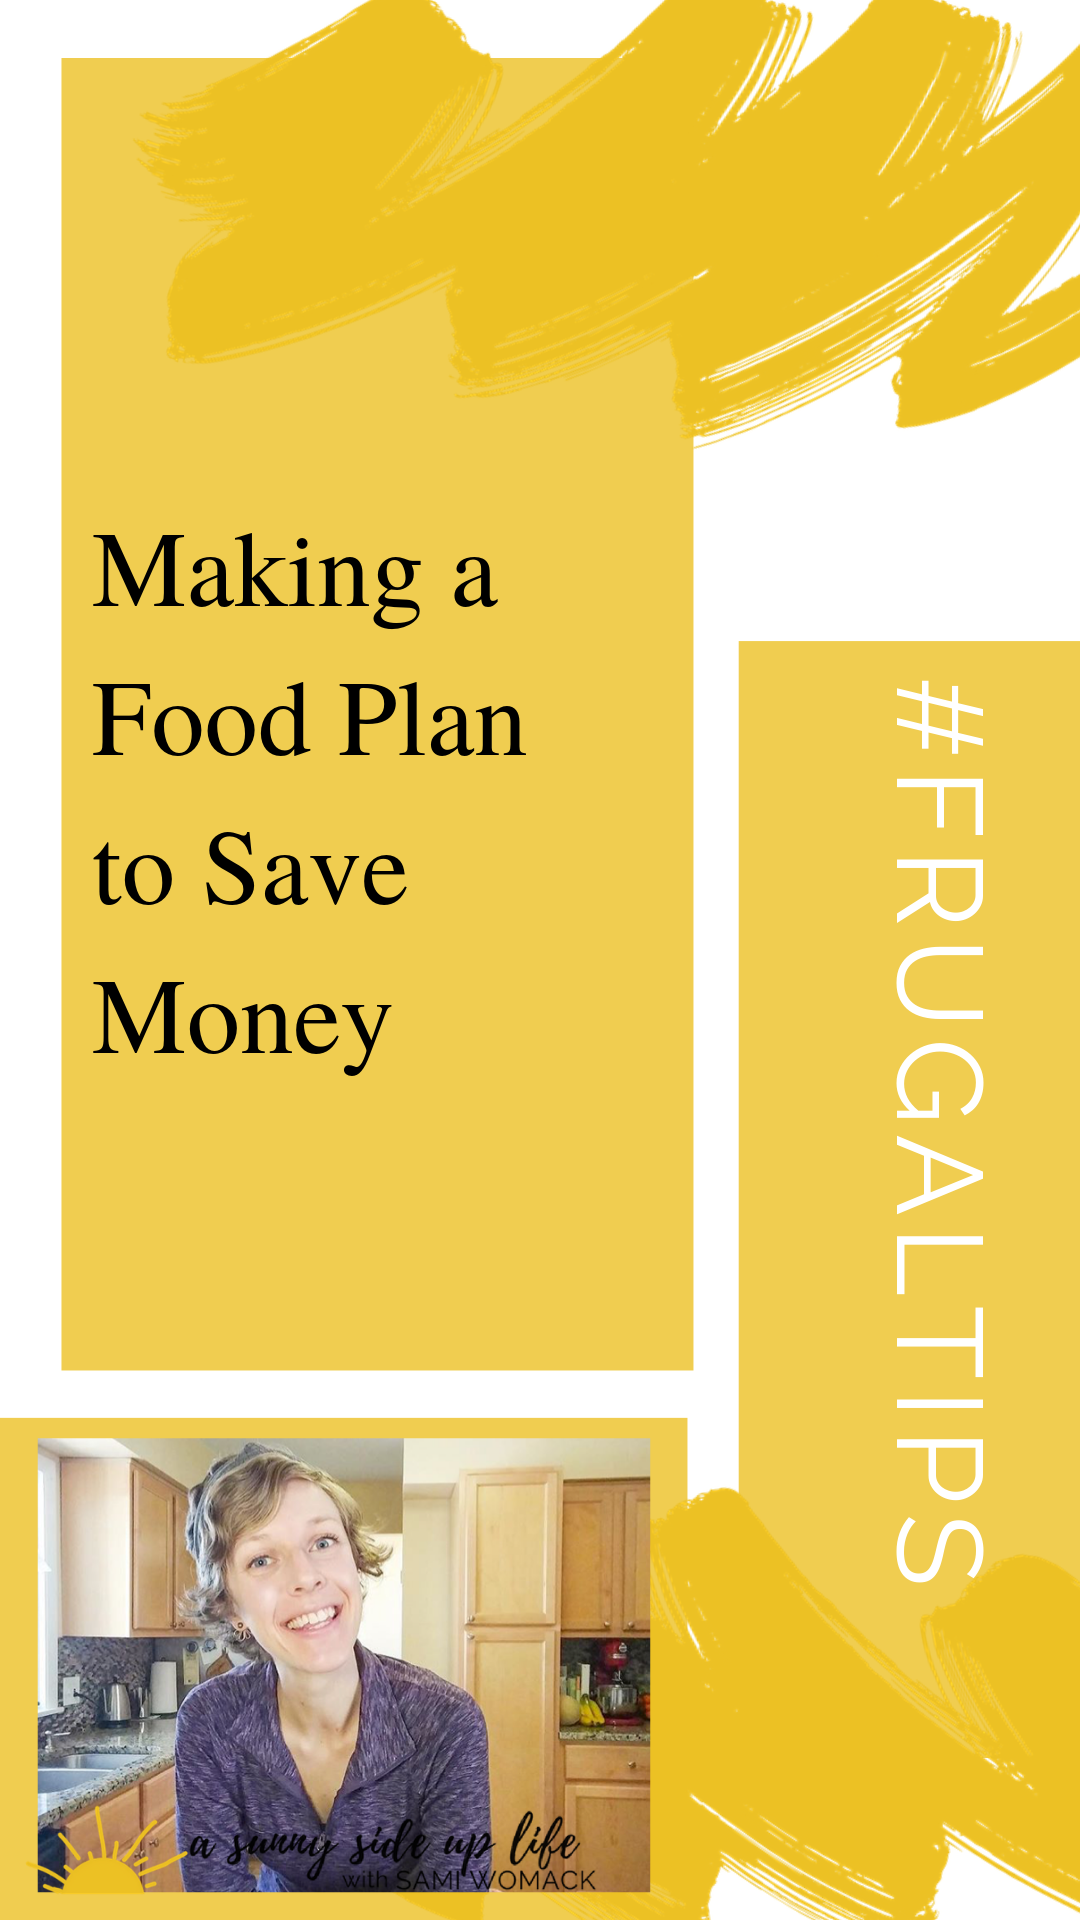 how to make a meal plan | meal planning for beginners | newbie food plan | save money | frugal hacks | budgeting | family budget | groceries | grocery shopping